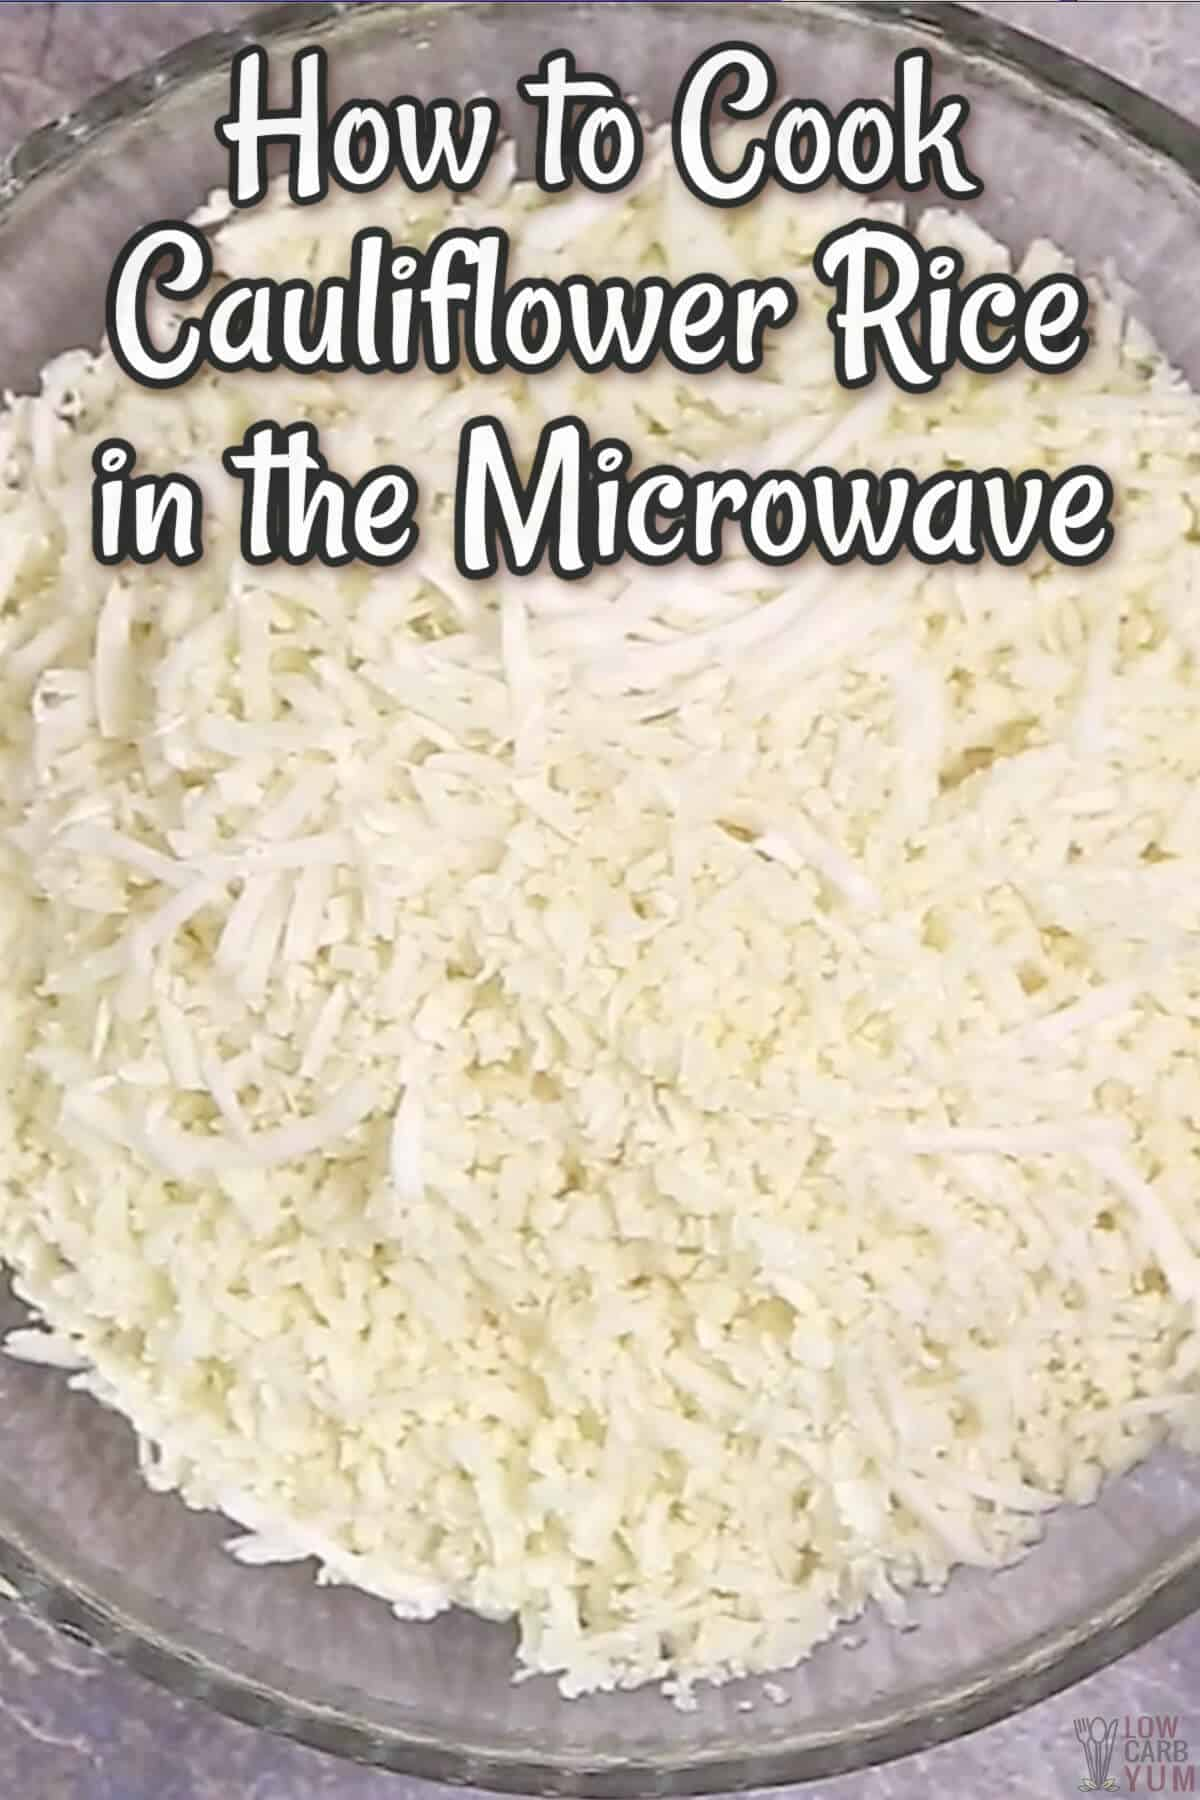 how to cook cauliflower rice in the microwave cover image